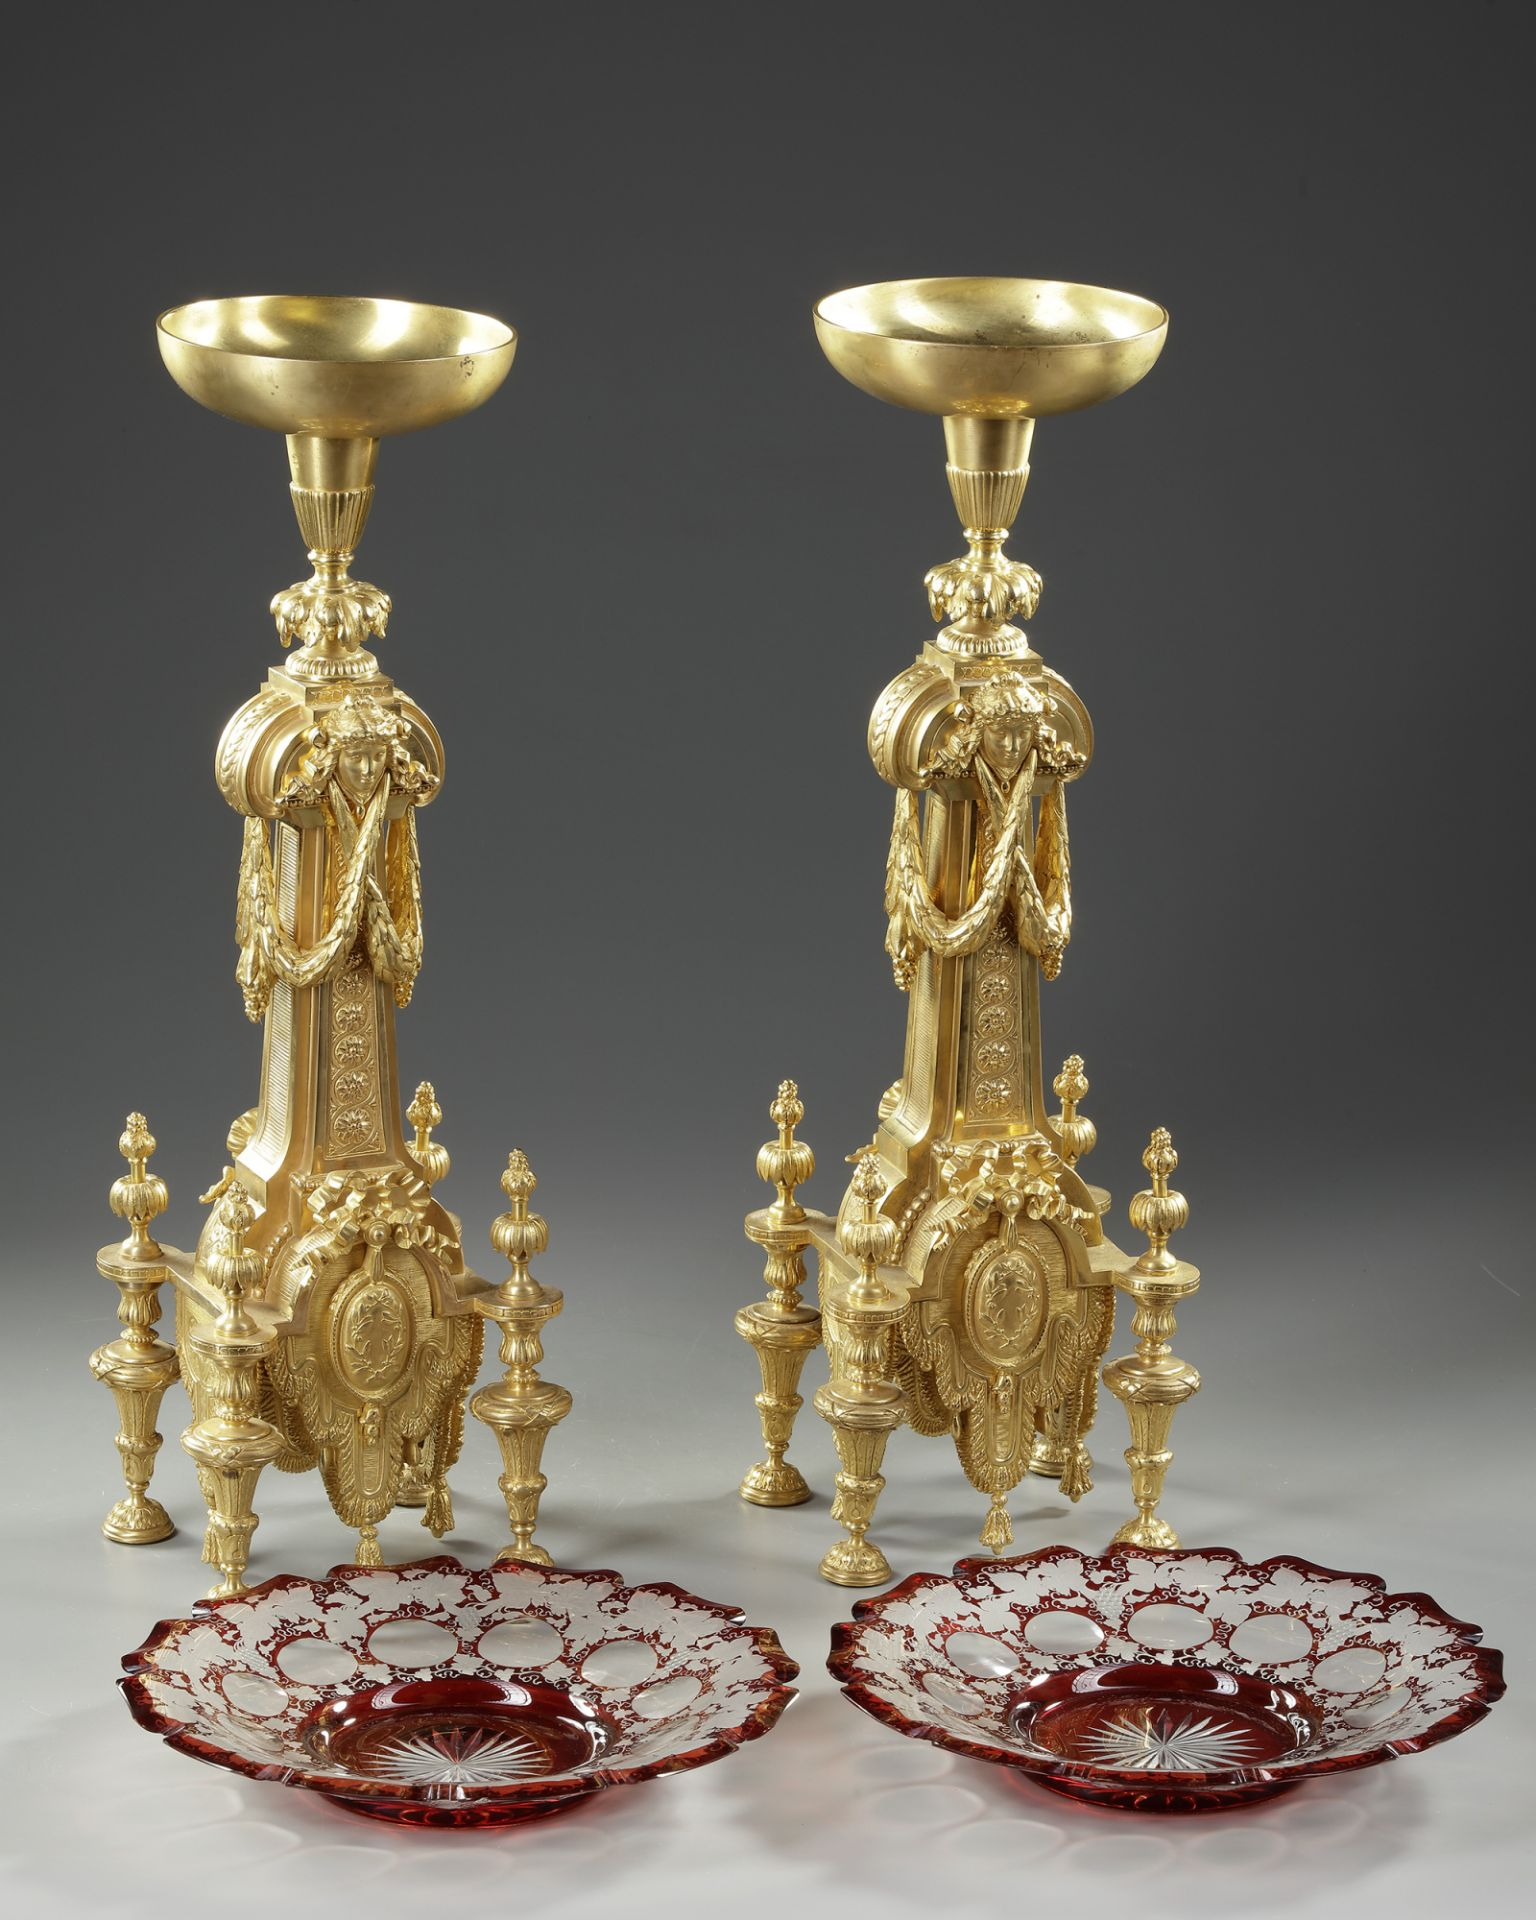 A PAIR OF ORMOLU CENTERPIECES, FRANCE, 19TH CENTURY - Image 4 of 4